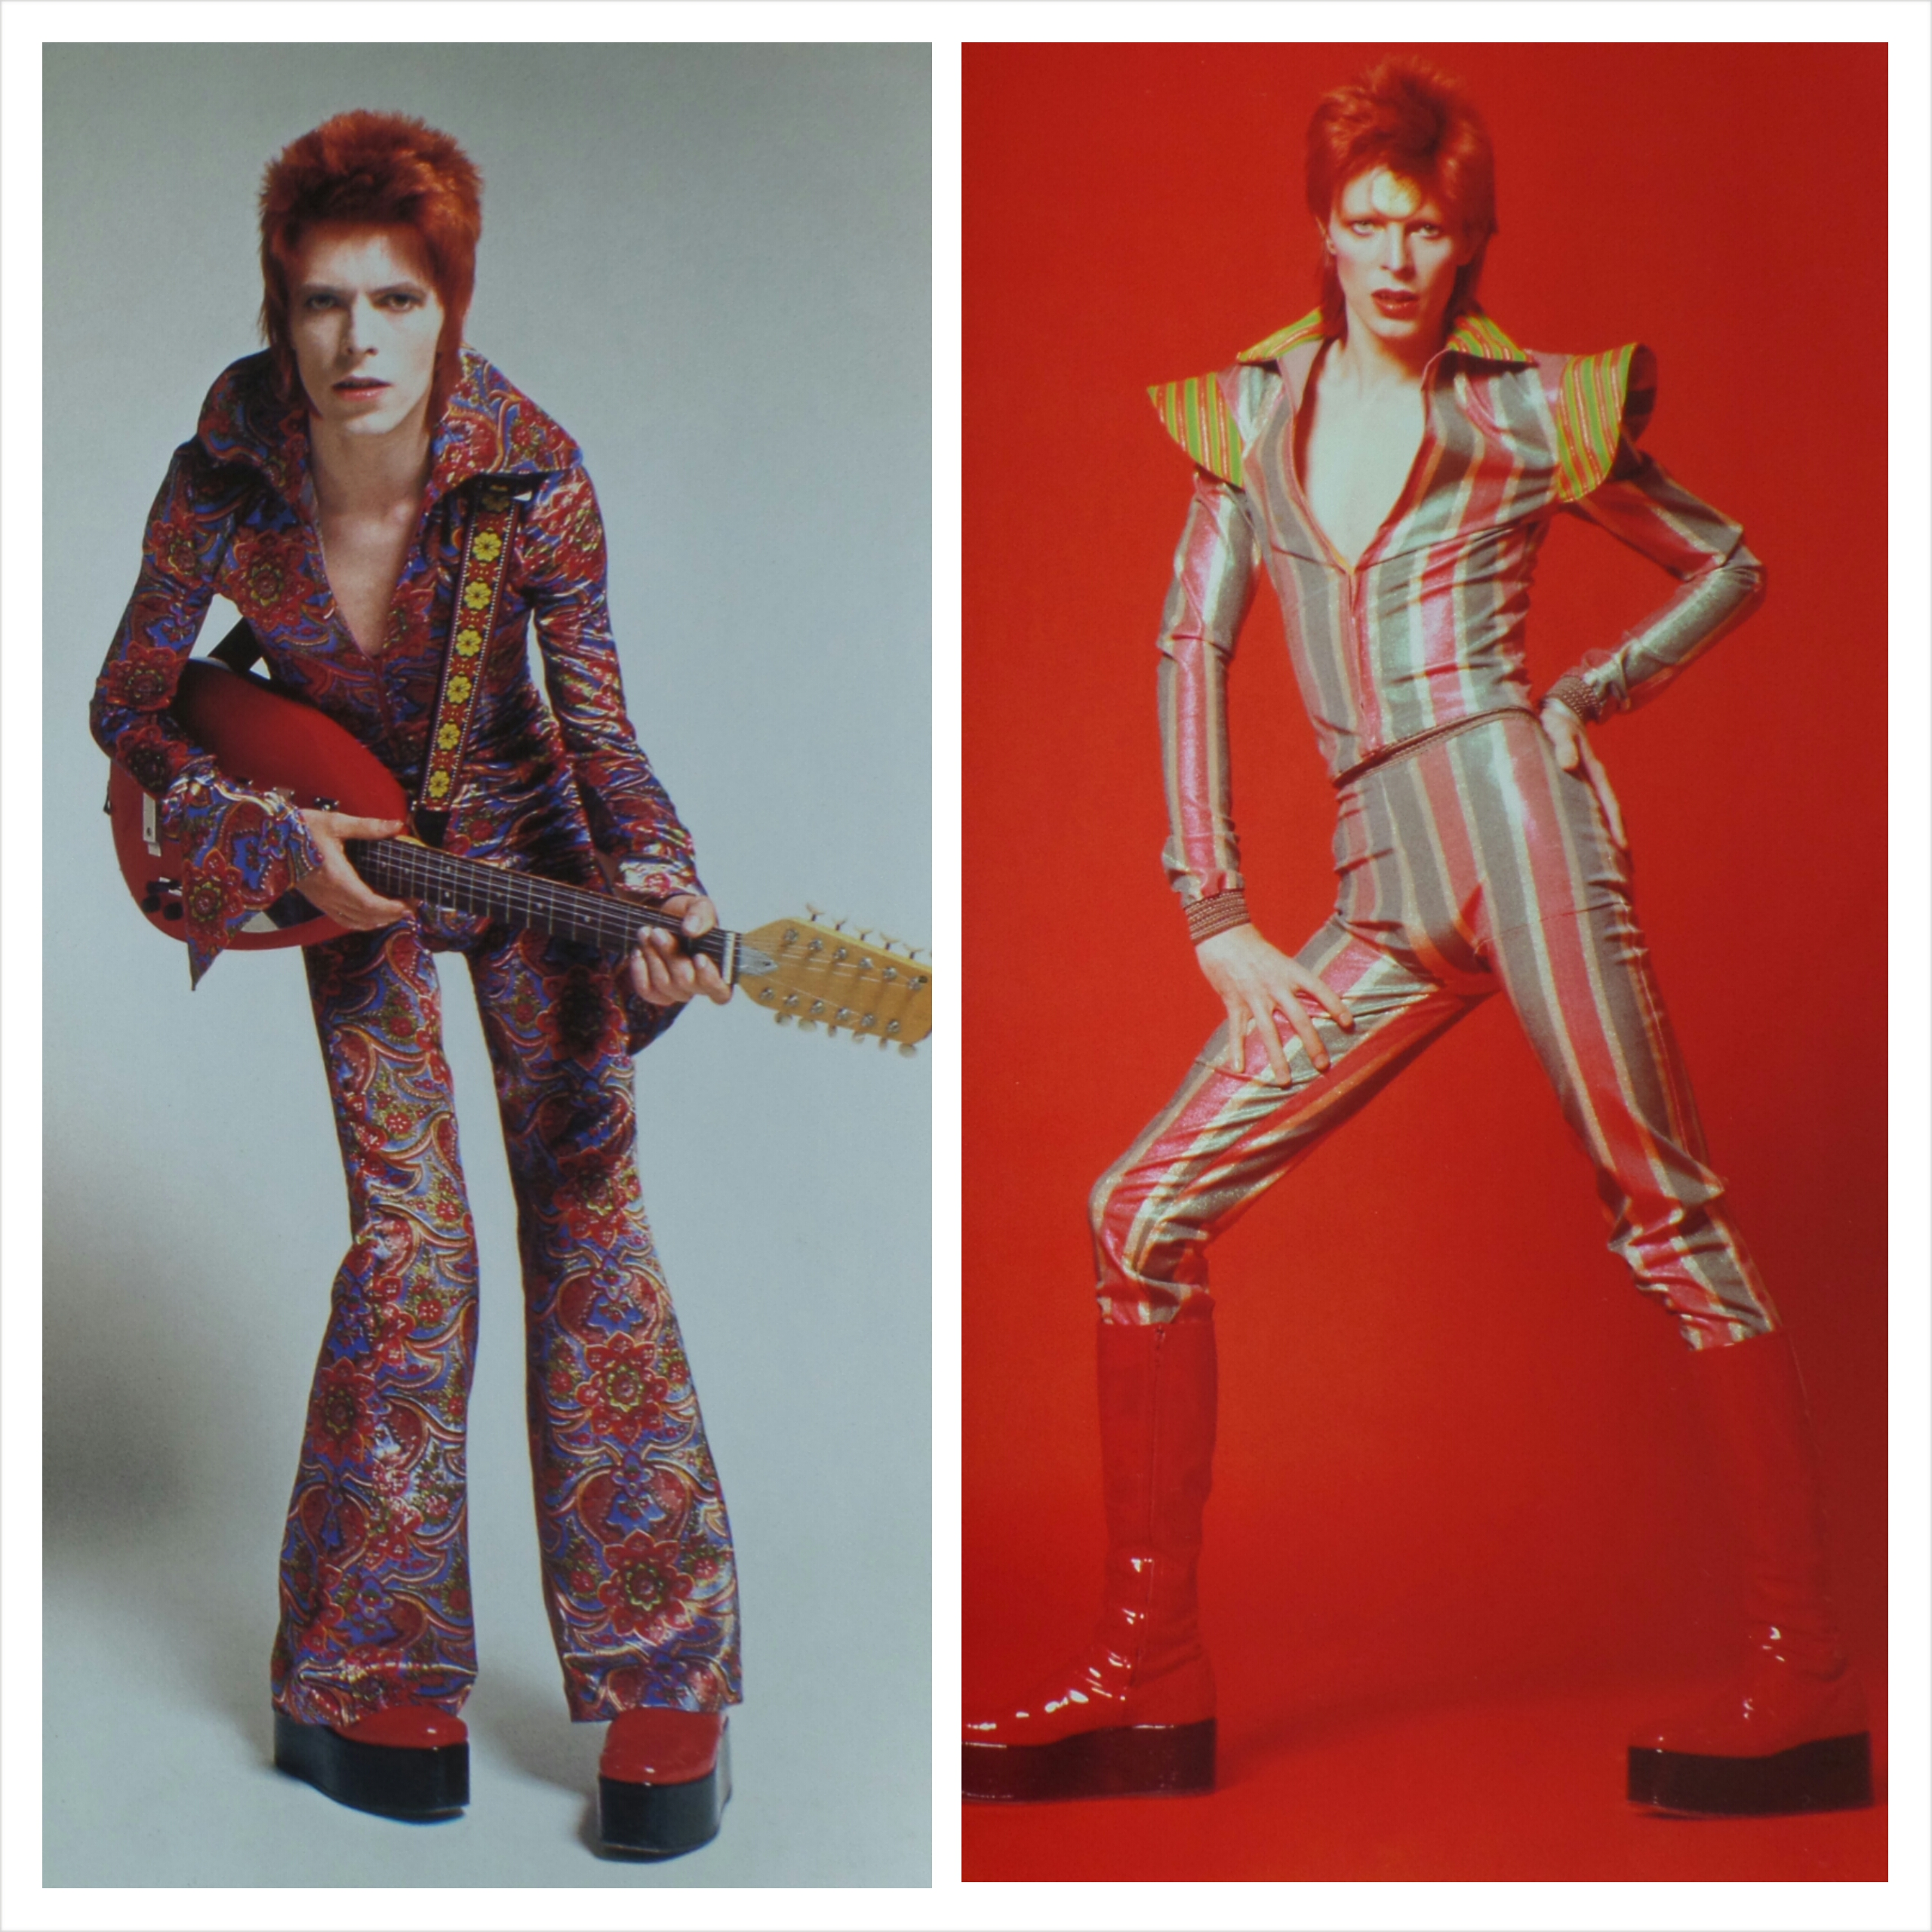 Ziggy Stardust platforms are back and